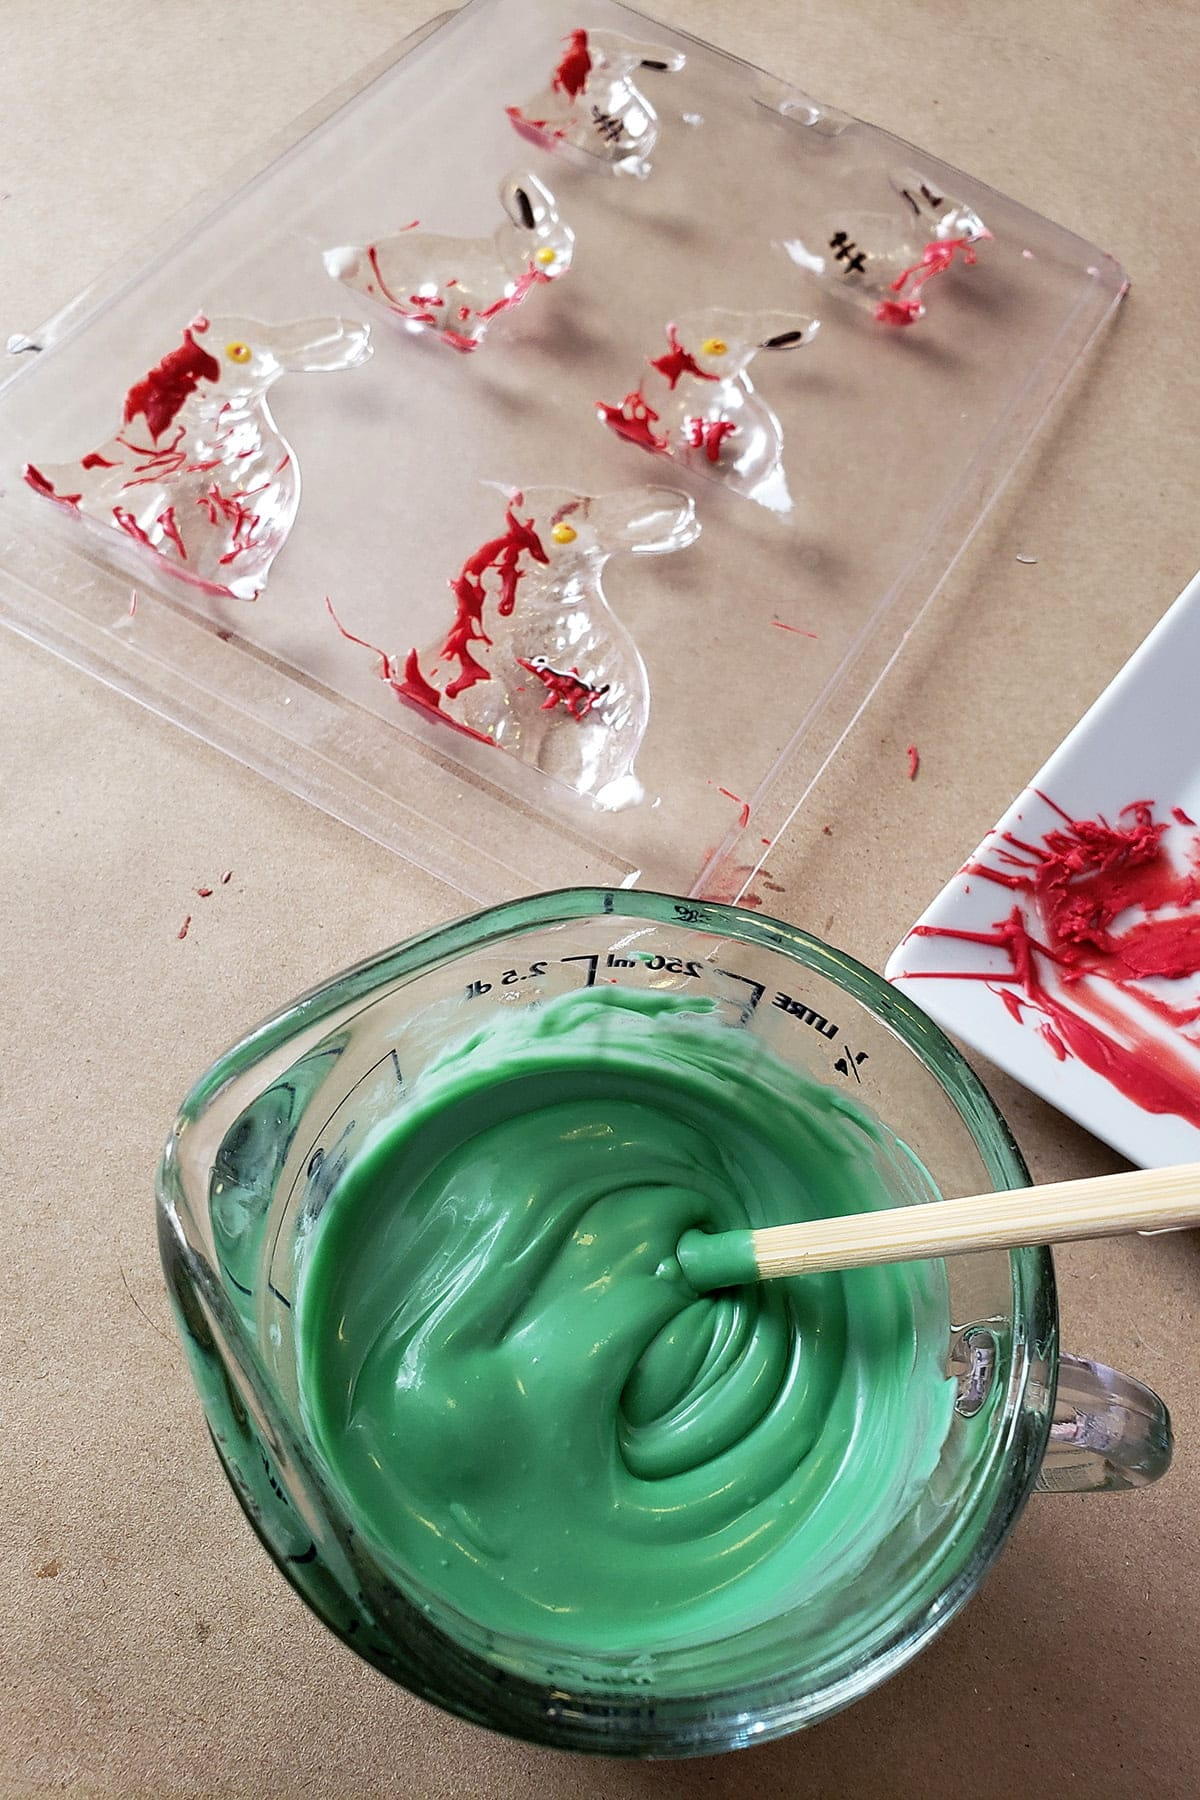 A measuring cup full of green melted candy rests next to a decorated chocolate bunny mold.